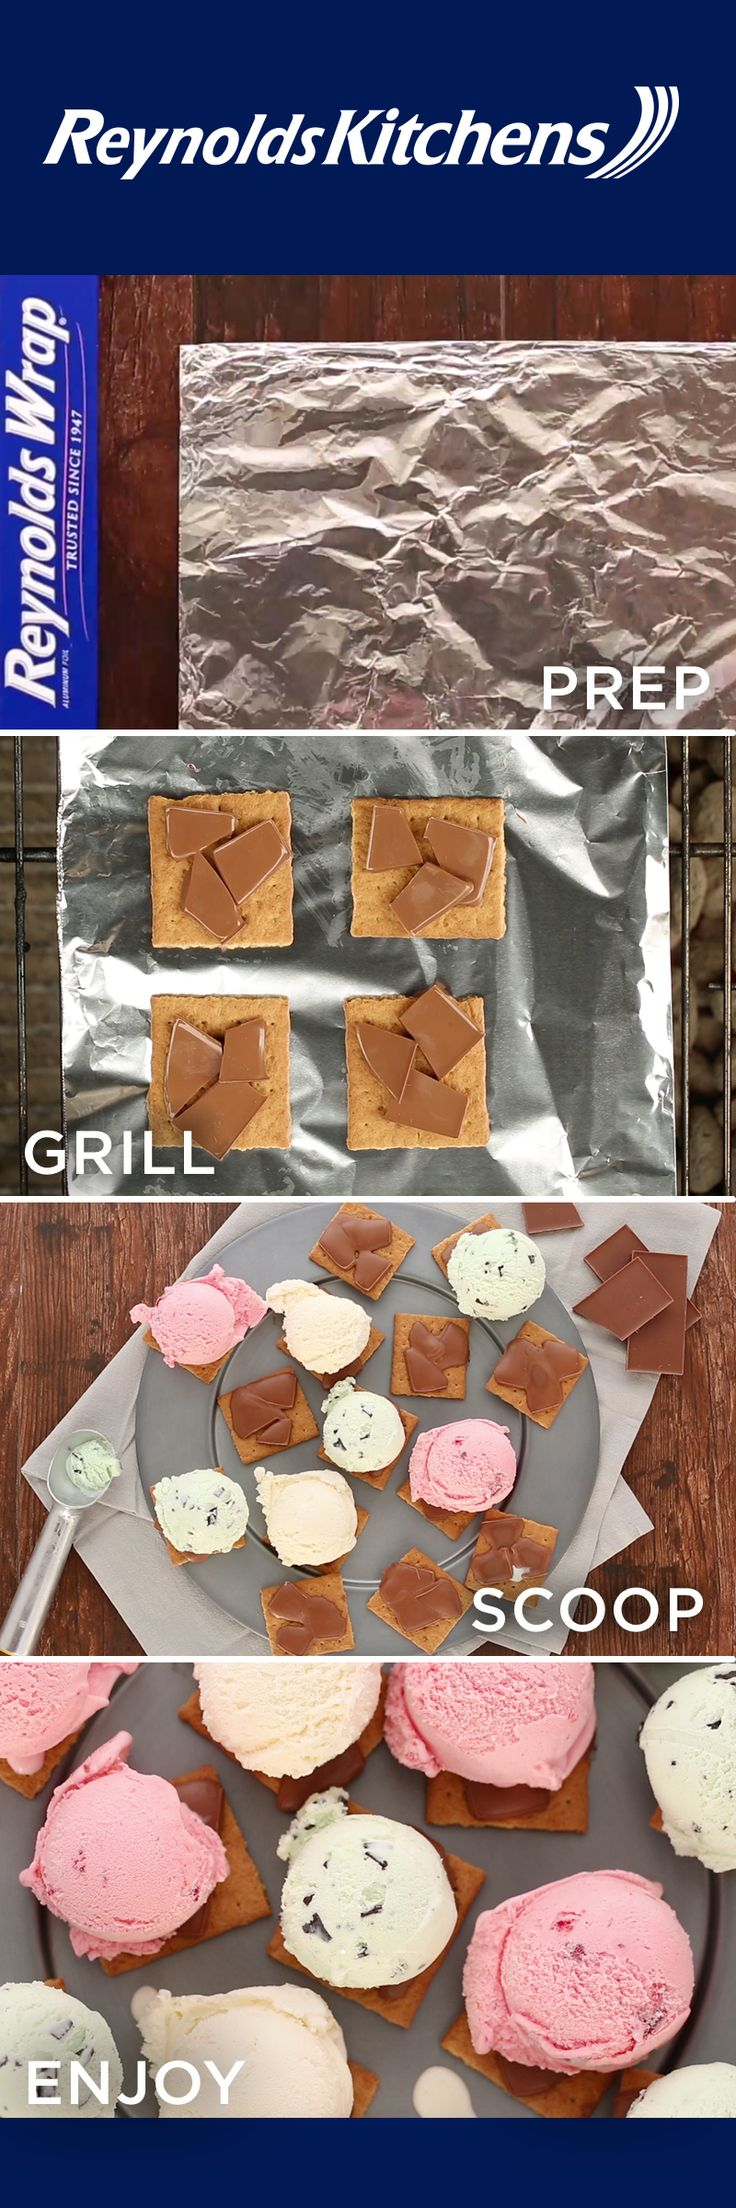 There's no summer treat quite like a s'more! For a cool twist on a classic recipe, try our Grilled S'mores Ice Cream Sandwiches. They're so simple and delicious, you'll keep coming back for more! Use Reynolds Wrap® for quick and easy grilling, no bonfire or cleanup necessary. Prepare the s'mores, throw them on the grill, top with ice cream, and enjoy!